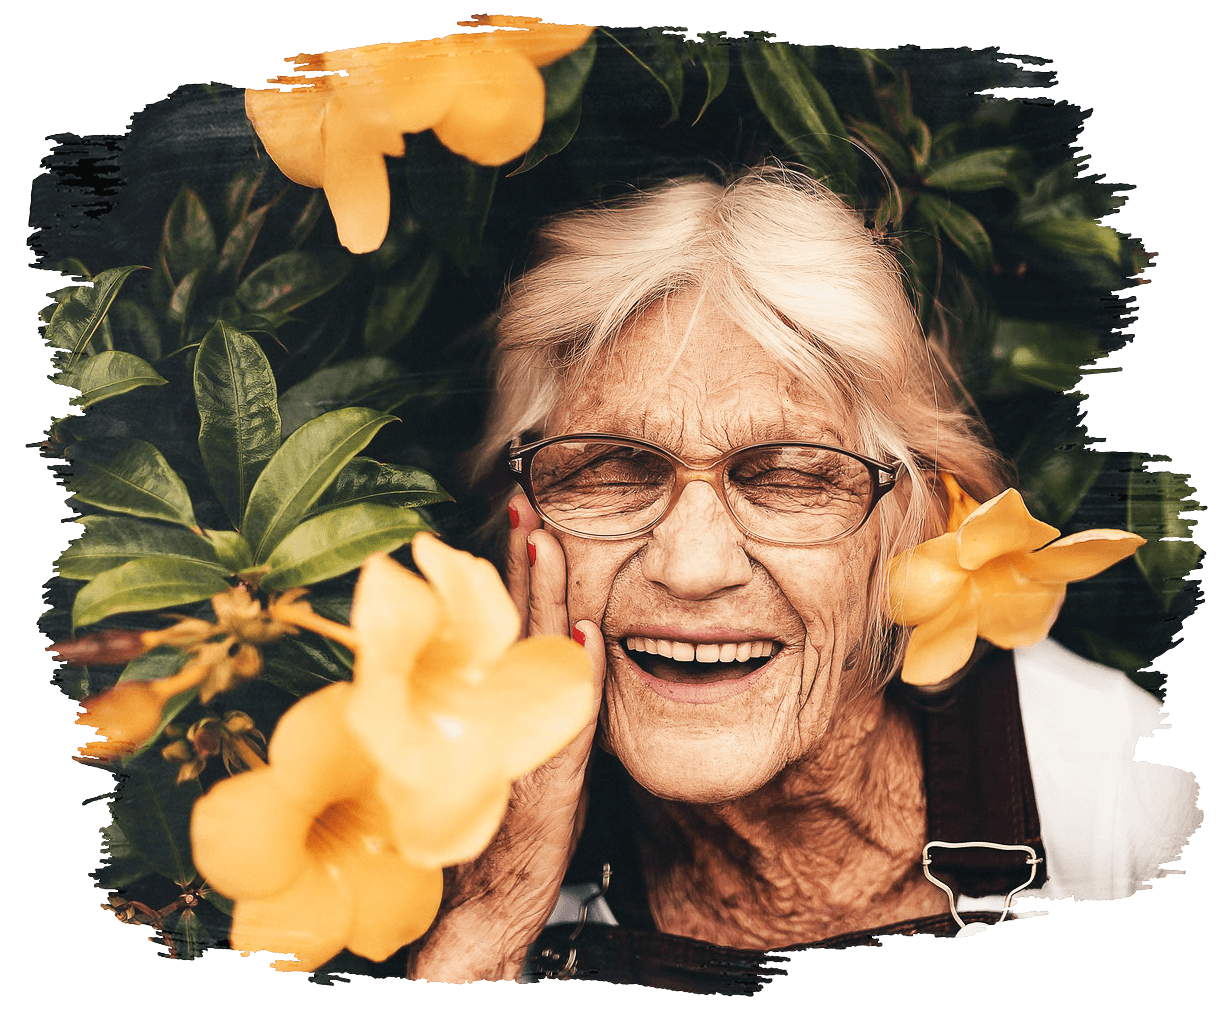 This is an image of a woman smiling with yellow flowers around her face